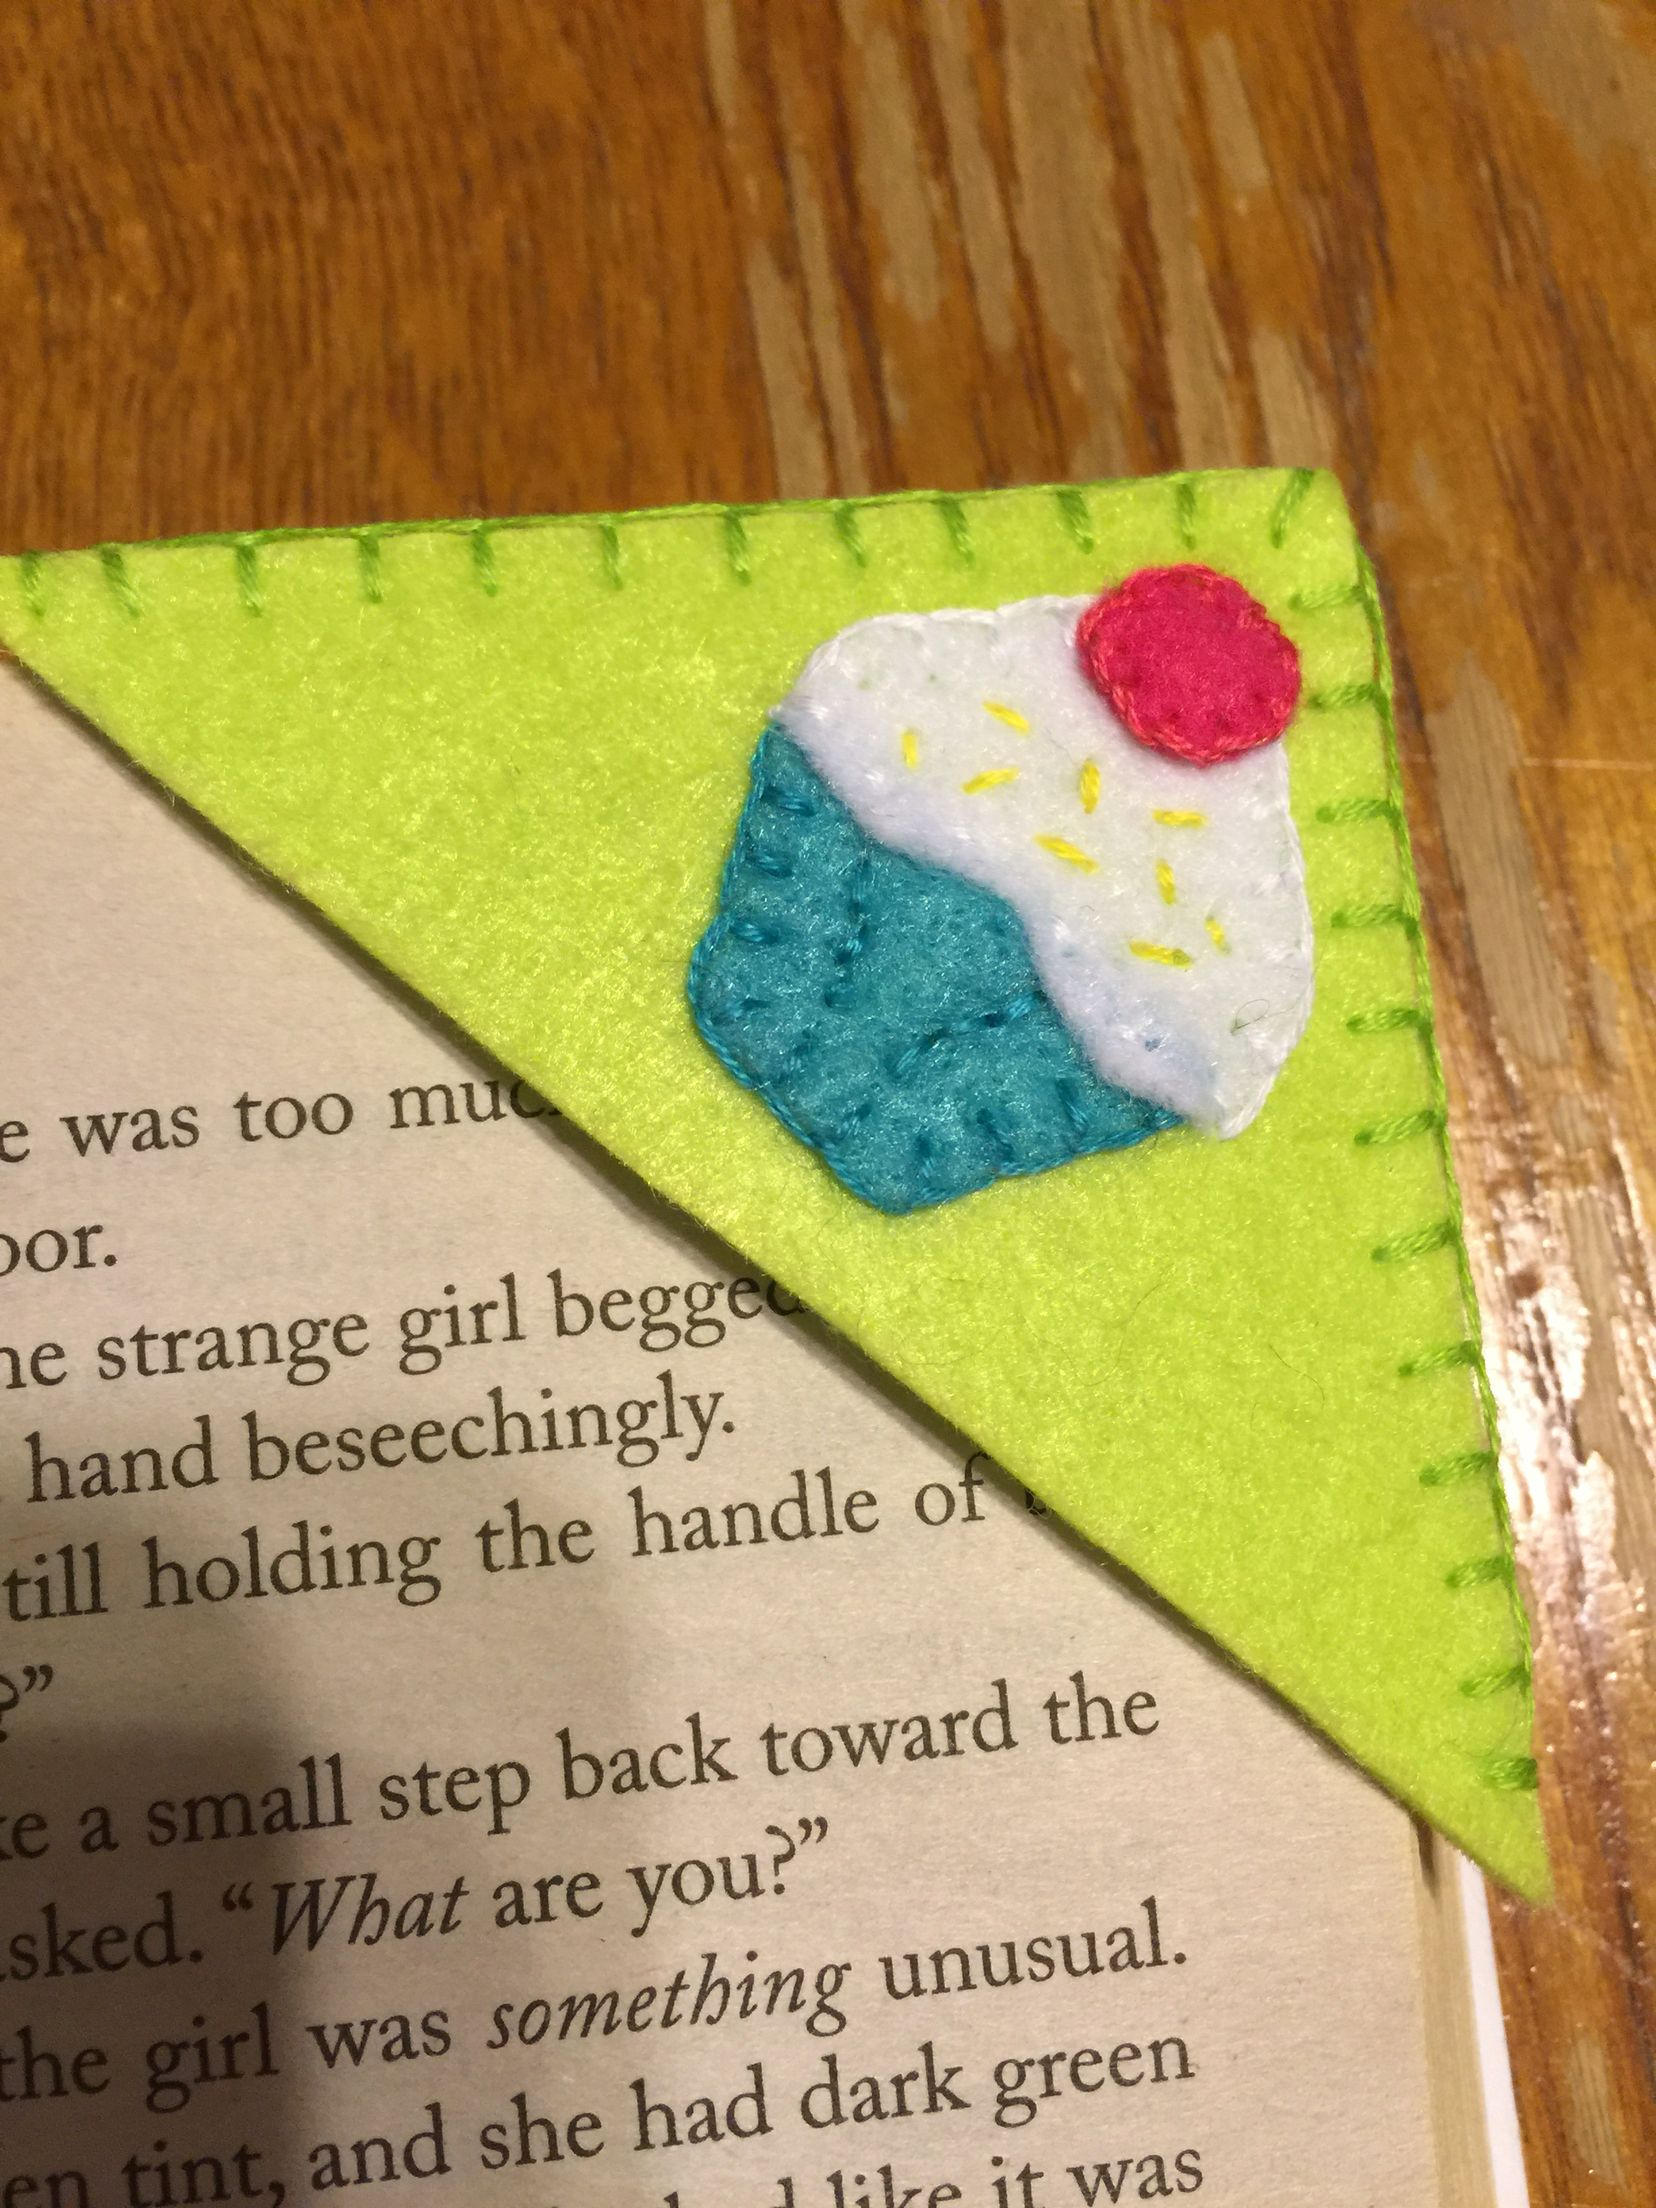 Felt corner bookmark!   Fits into any book.  Handmade. Can be found on etsy.com.